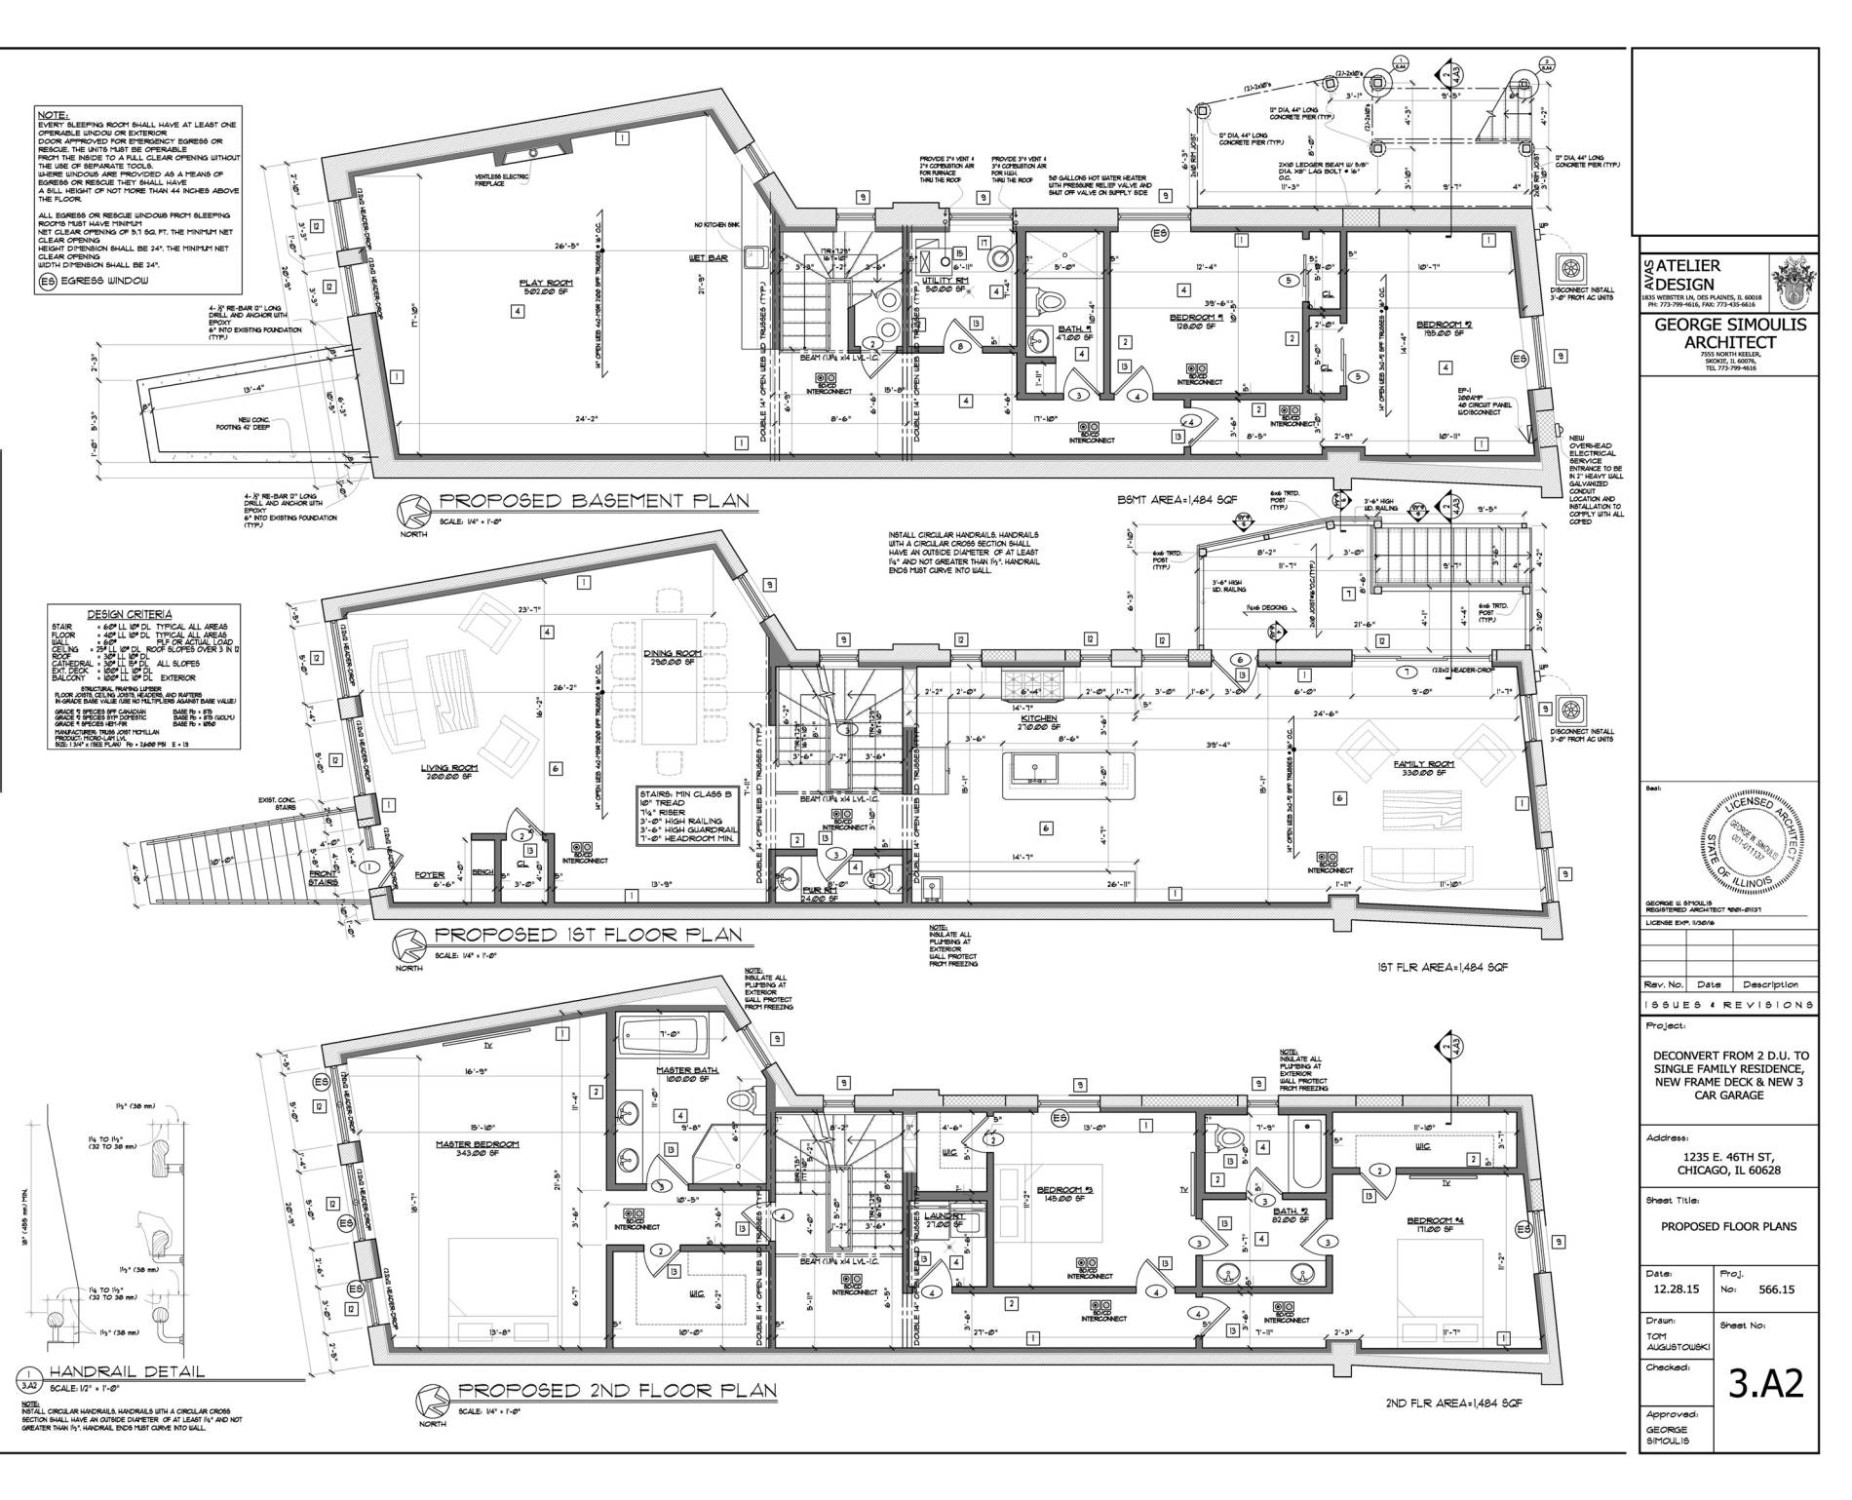 1235 E. 46th_project_proposed-plans_Page_3